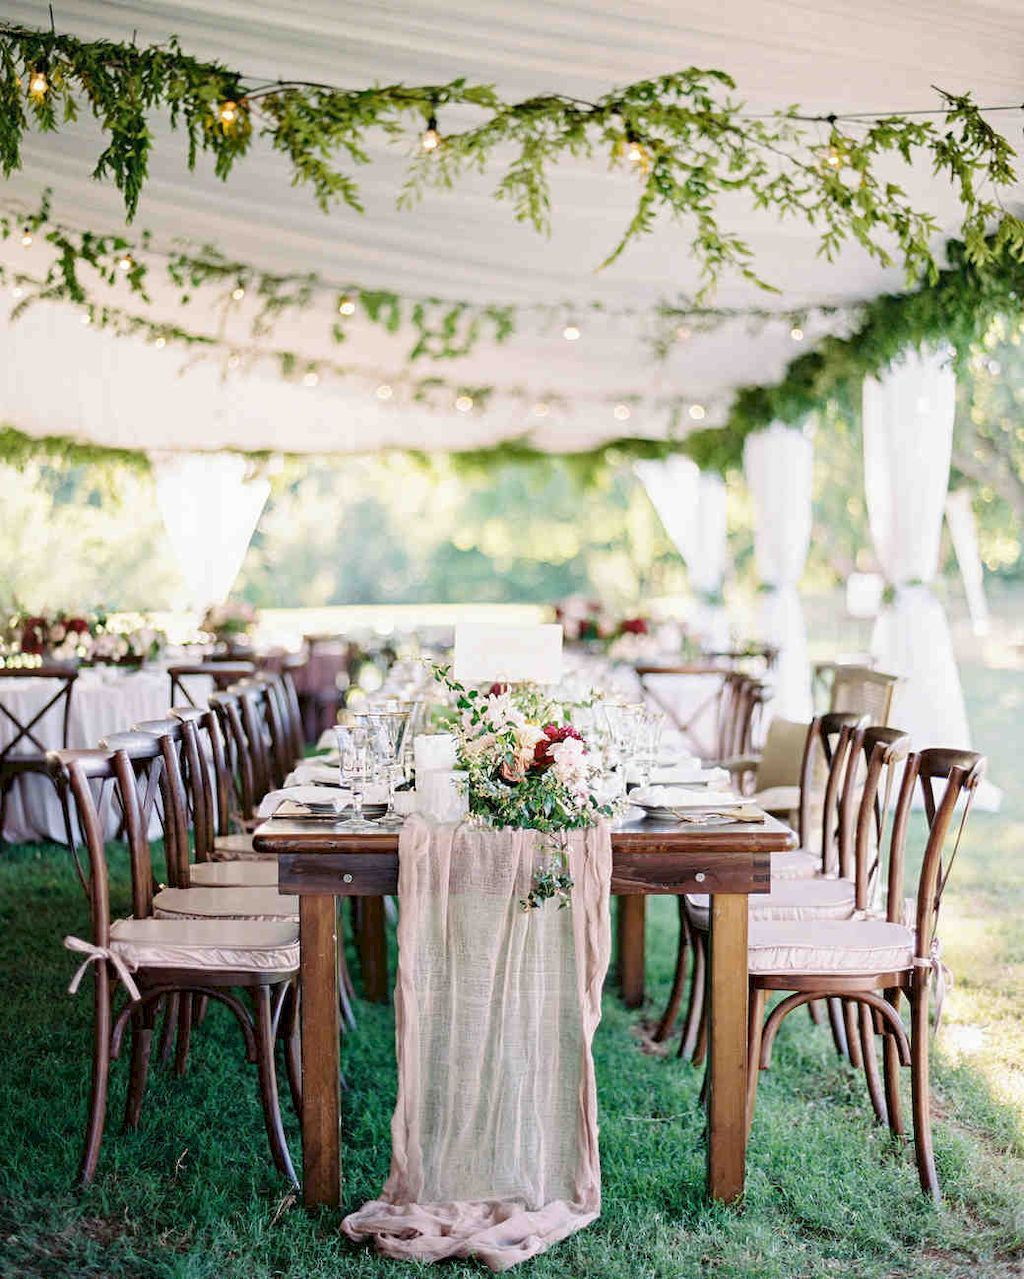 Outdoor garden wedding decoration ideas  Elegant outdoor wedding decor ideas on a budget   Actividad